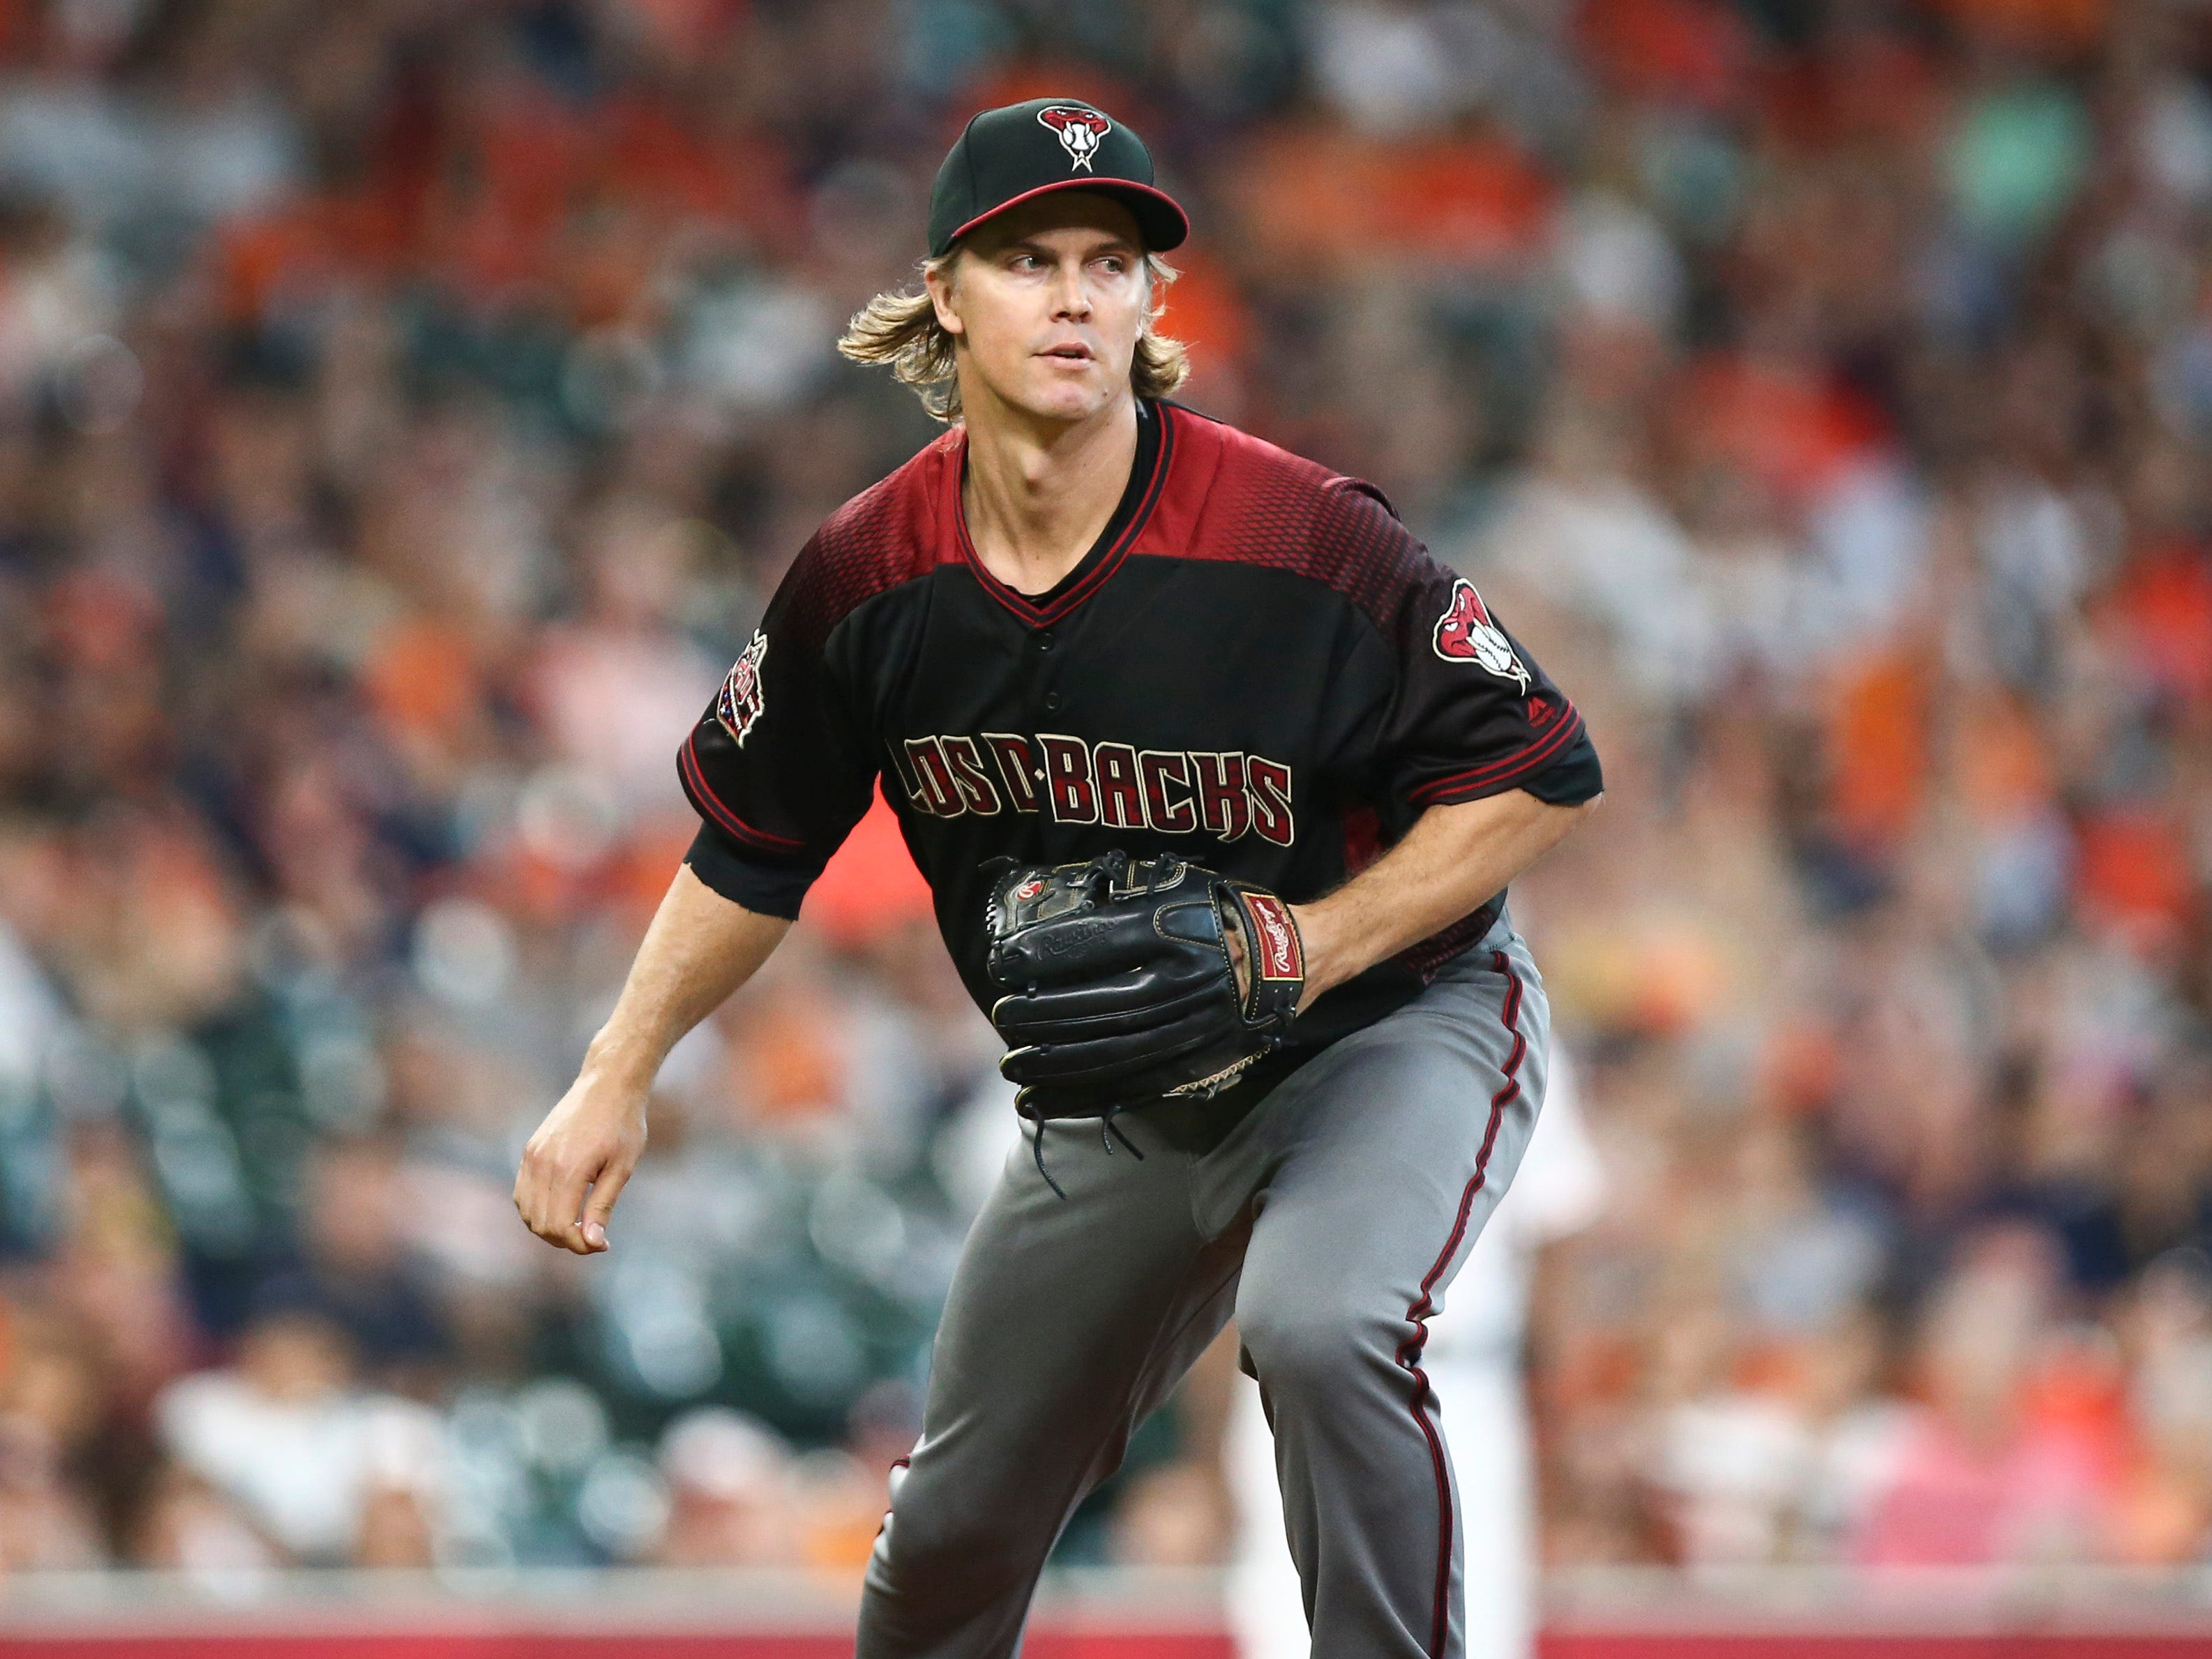 Sep 16, 2018; Houston, TX, USA; Arizona Diamondbacks starting pitcher Zack Greinke (21) reacts after a pitch during the first inning against the Houston Astros at Minute Maid Park. Mandatory Credit: Troy Taormina-USA TODAY Sports